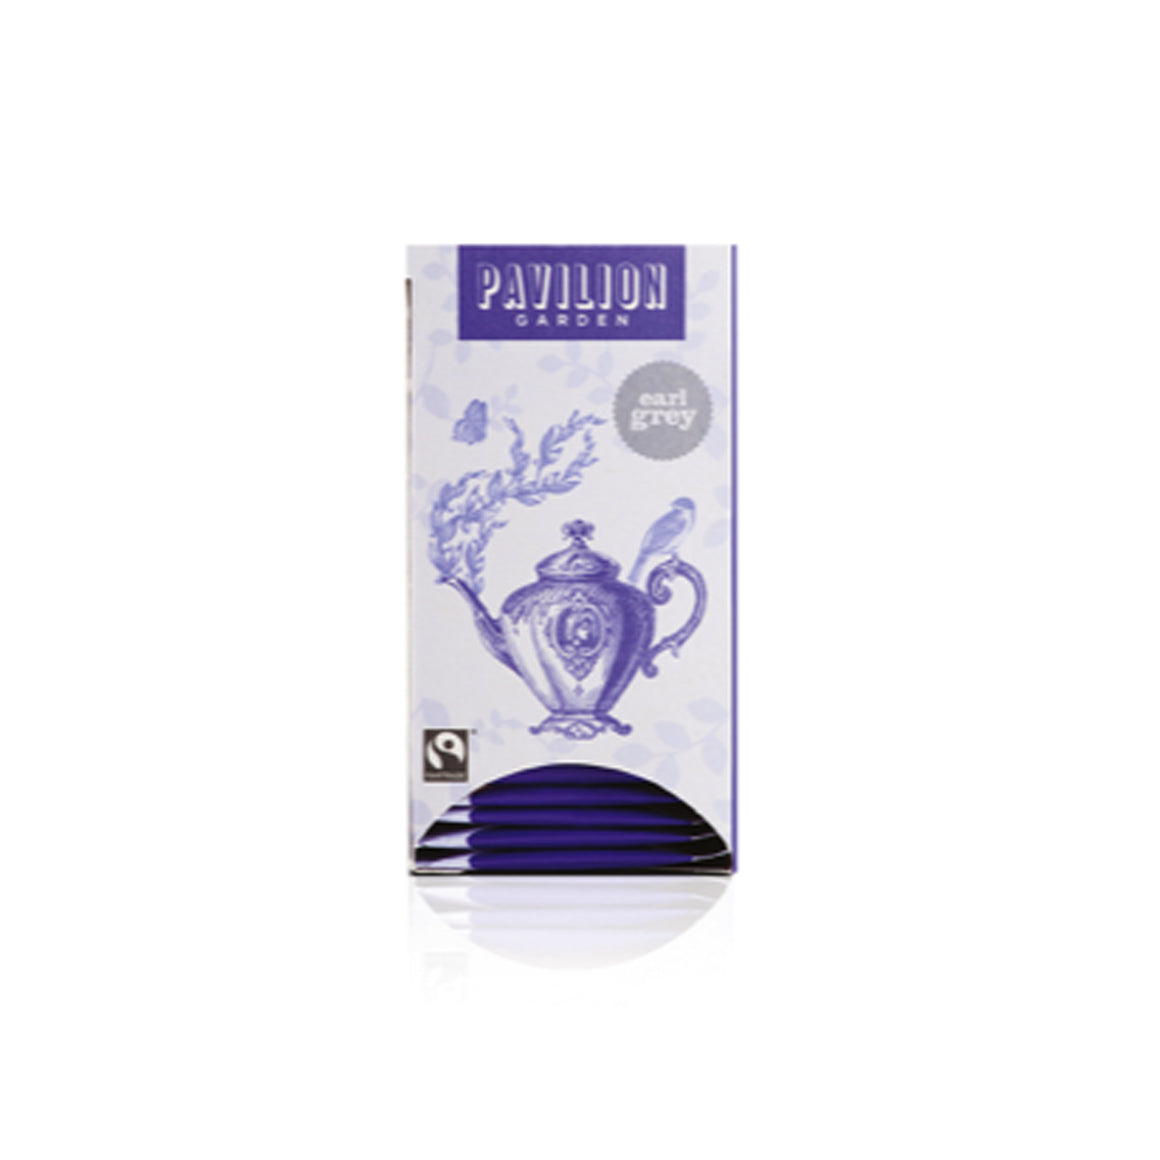 Pavilion Garden Fairtrade Earl Grey Tea